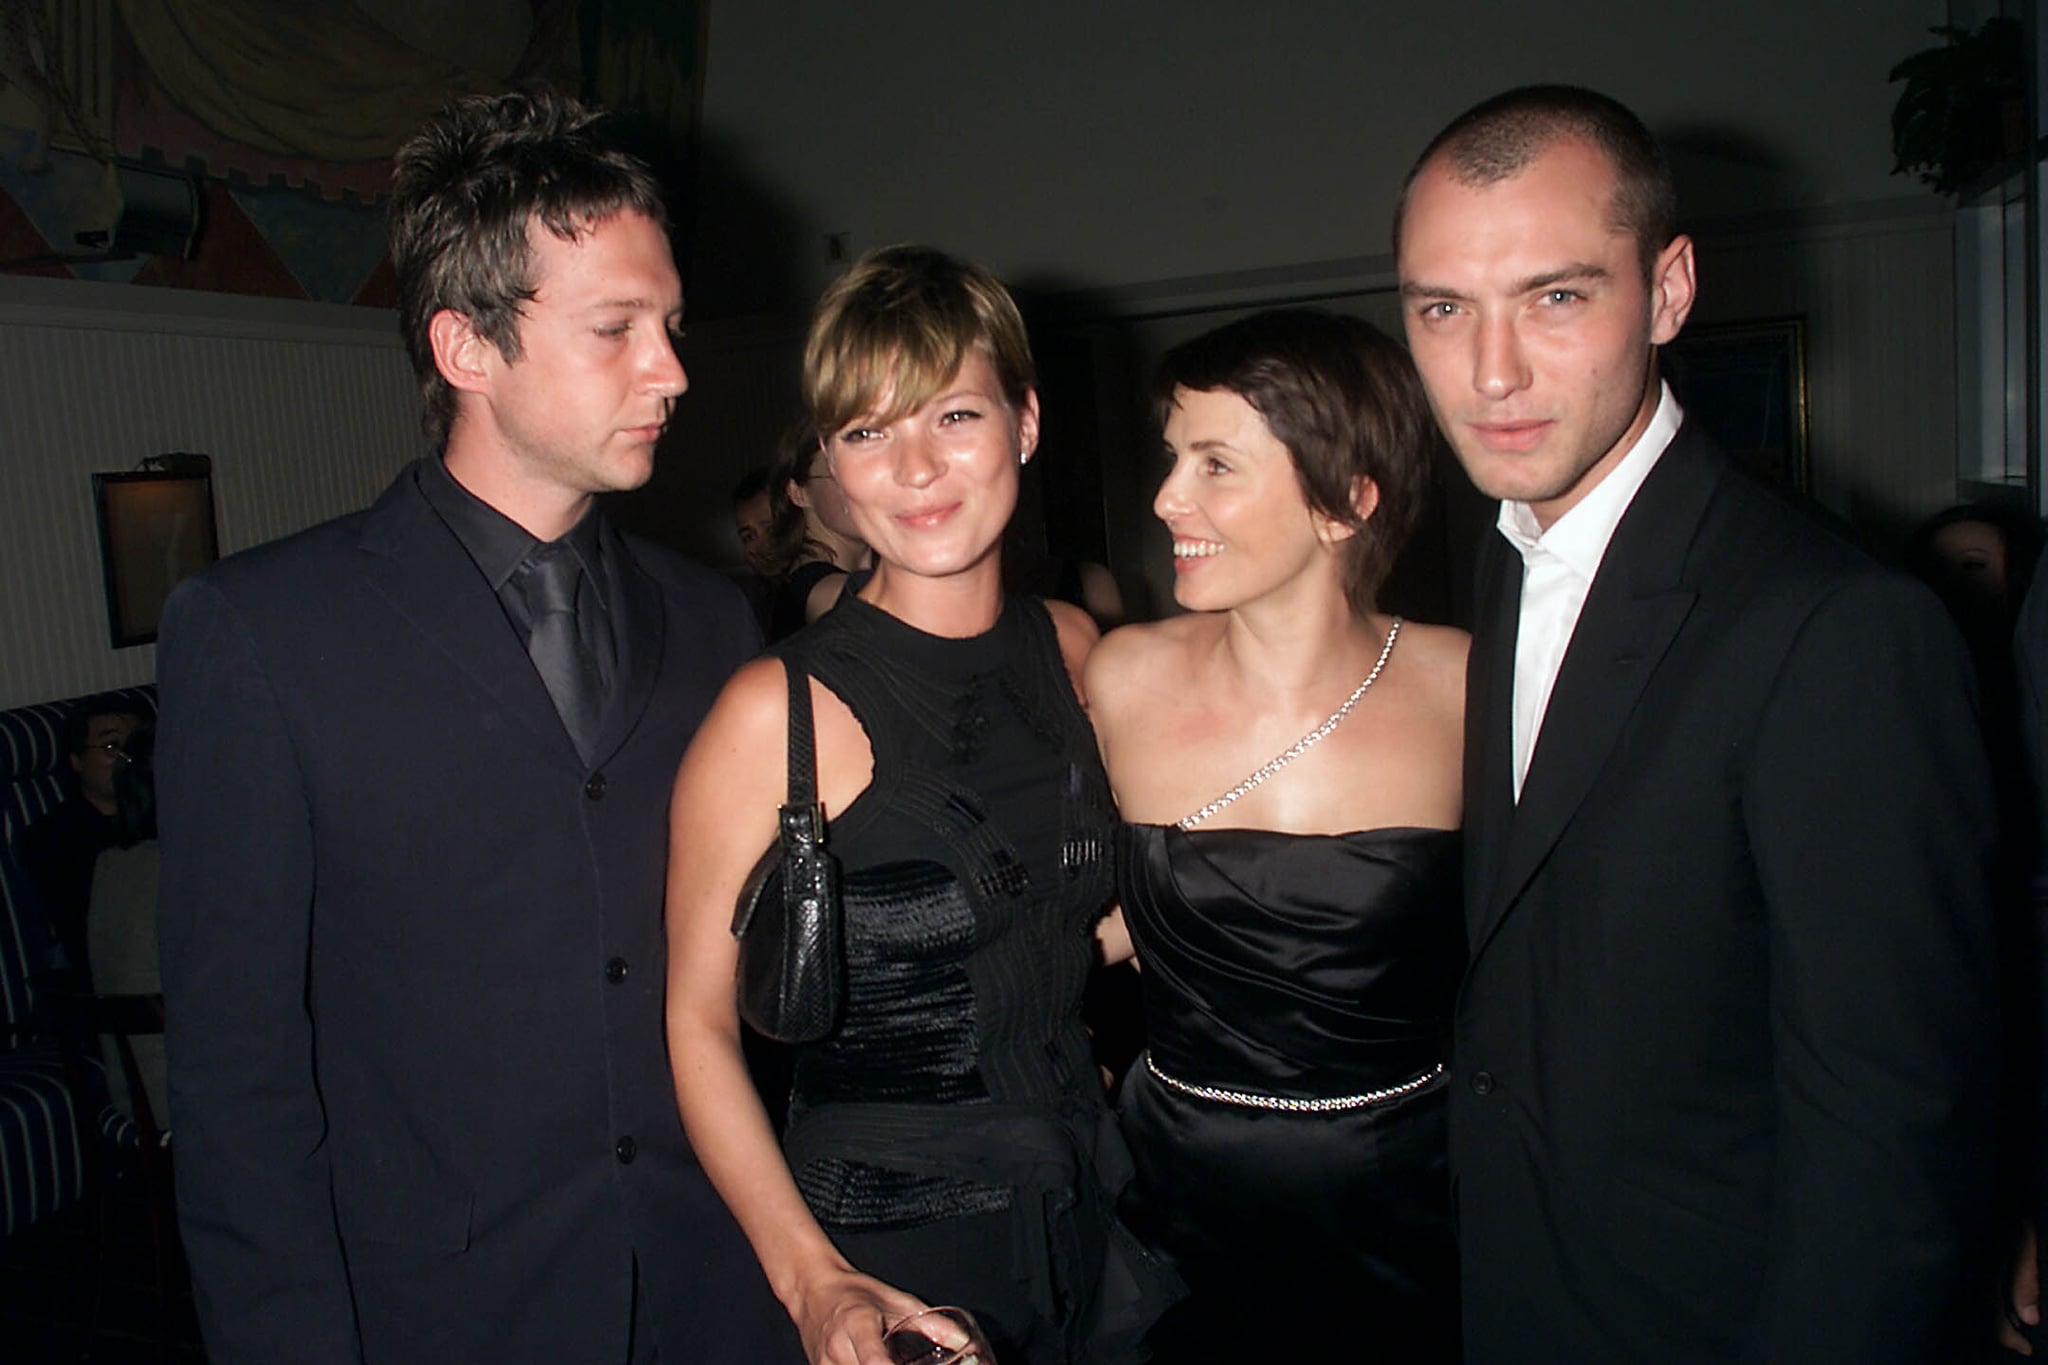 Kate Moss and Sadie Frost have been close for years, and when Sadie and ex-husband Jude Law welcome their daughter Iris in 2000, they chose the supermodel to be the baby girl's godmother. Kate returned the favor a year later when she named Jude and Sadie as godparents of her teenage daughter Lila Grace, whose father is editor Jefferson Hack.